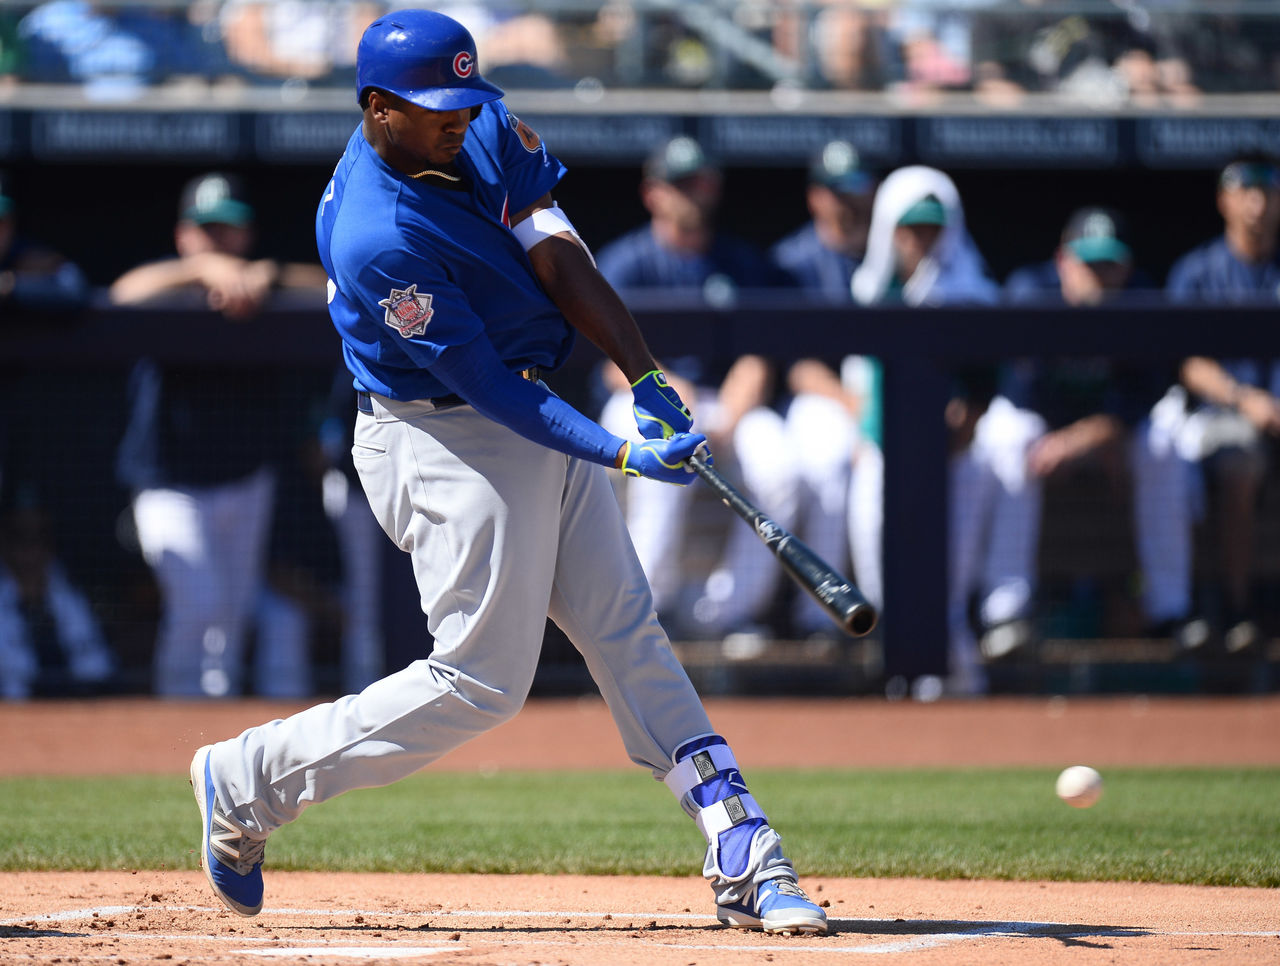 Cropped 2017 03 10t220121z 1333595930 nocid rtrmadp 3 mlb spring training chicago cubs at seattle mariners